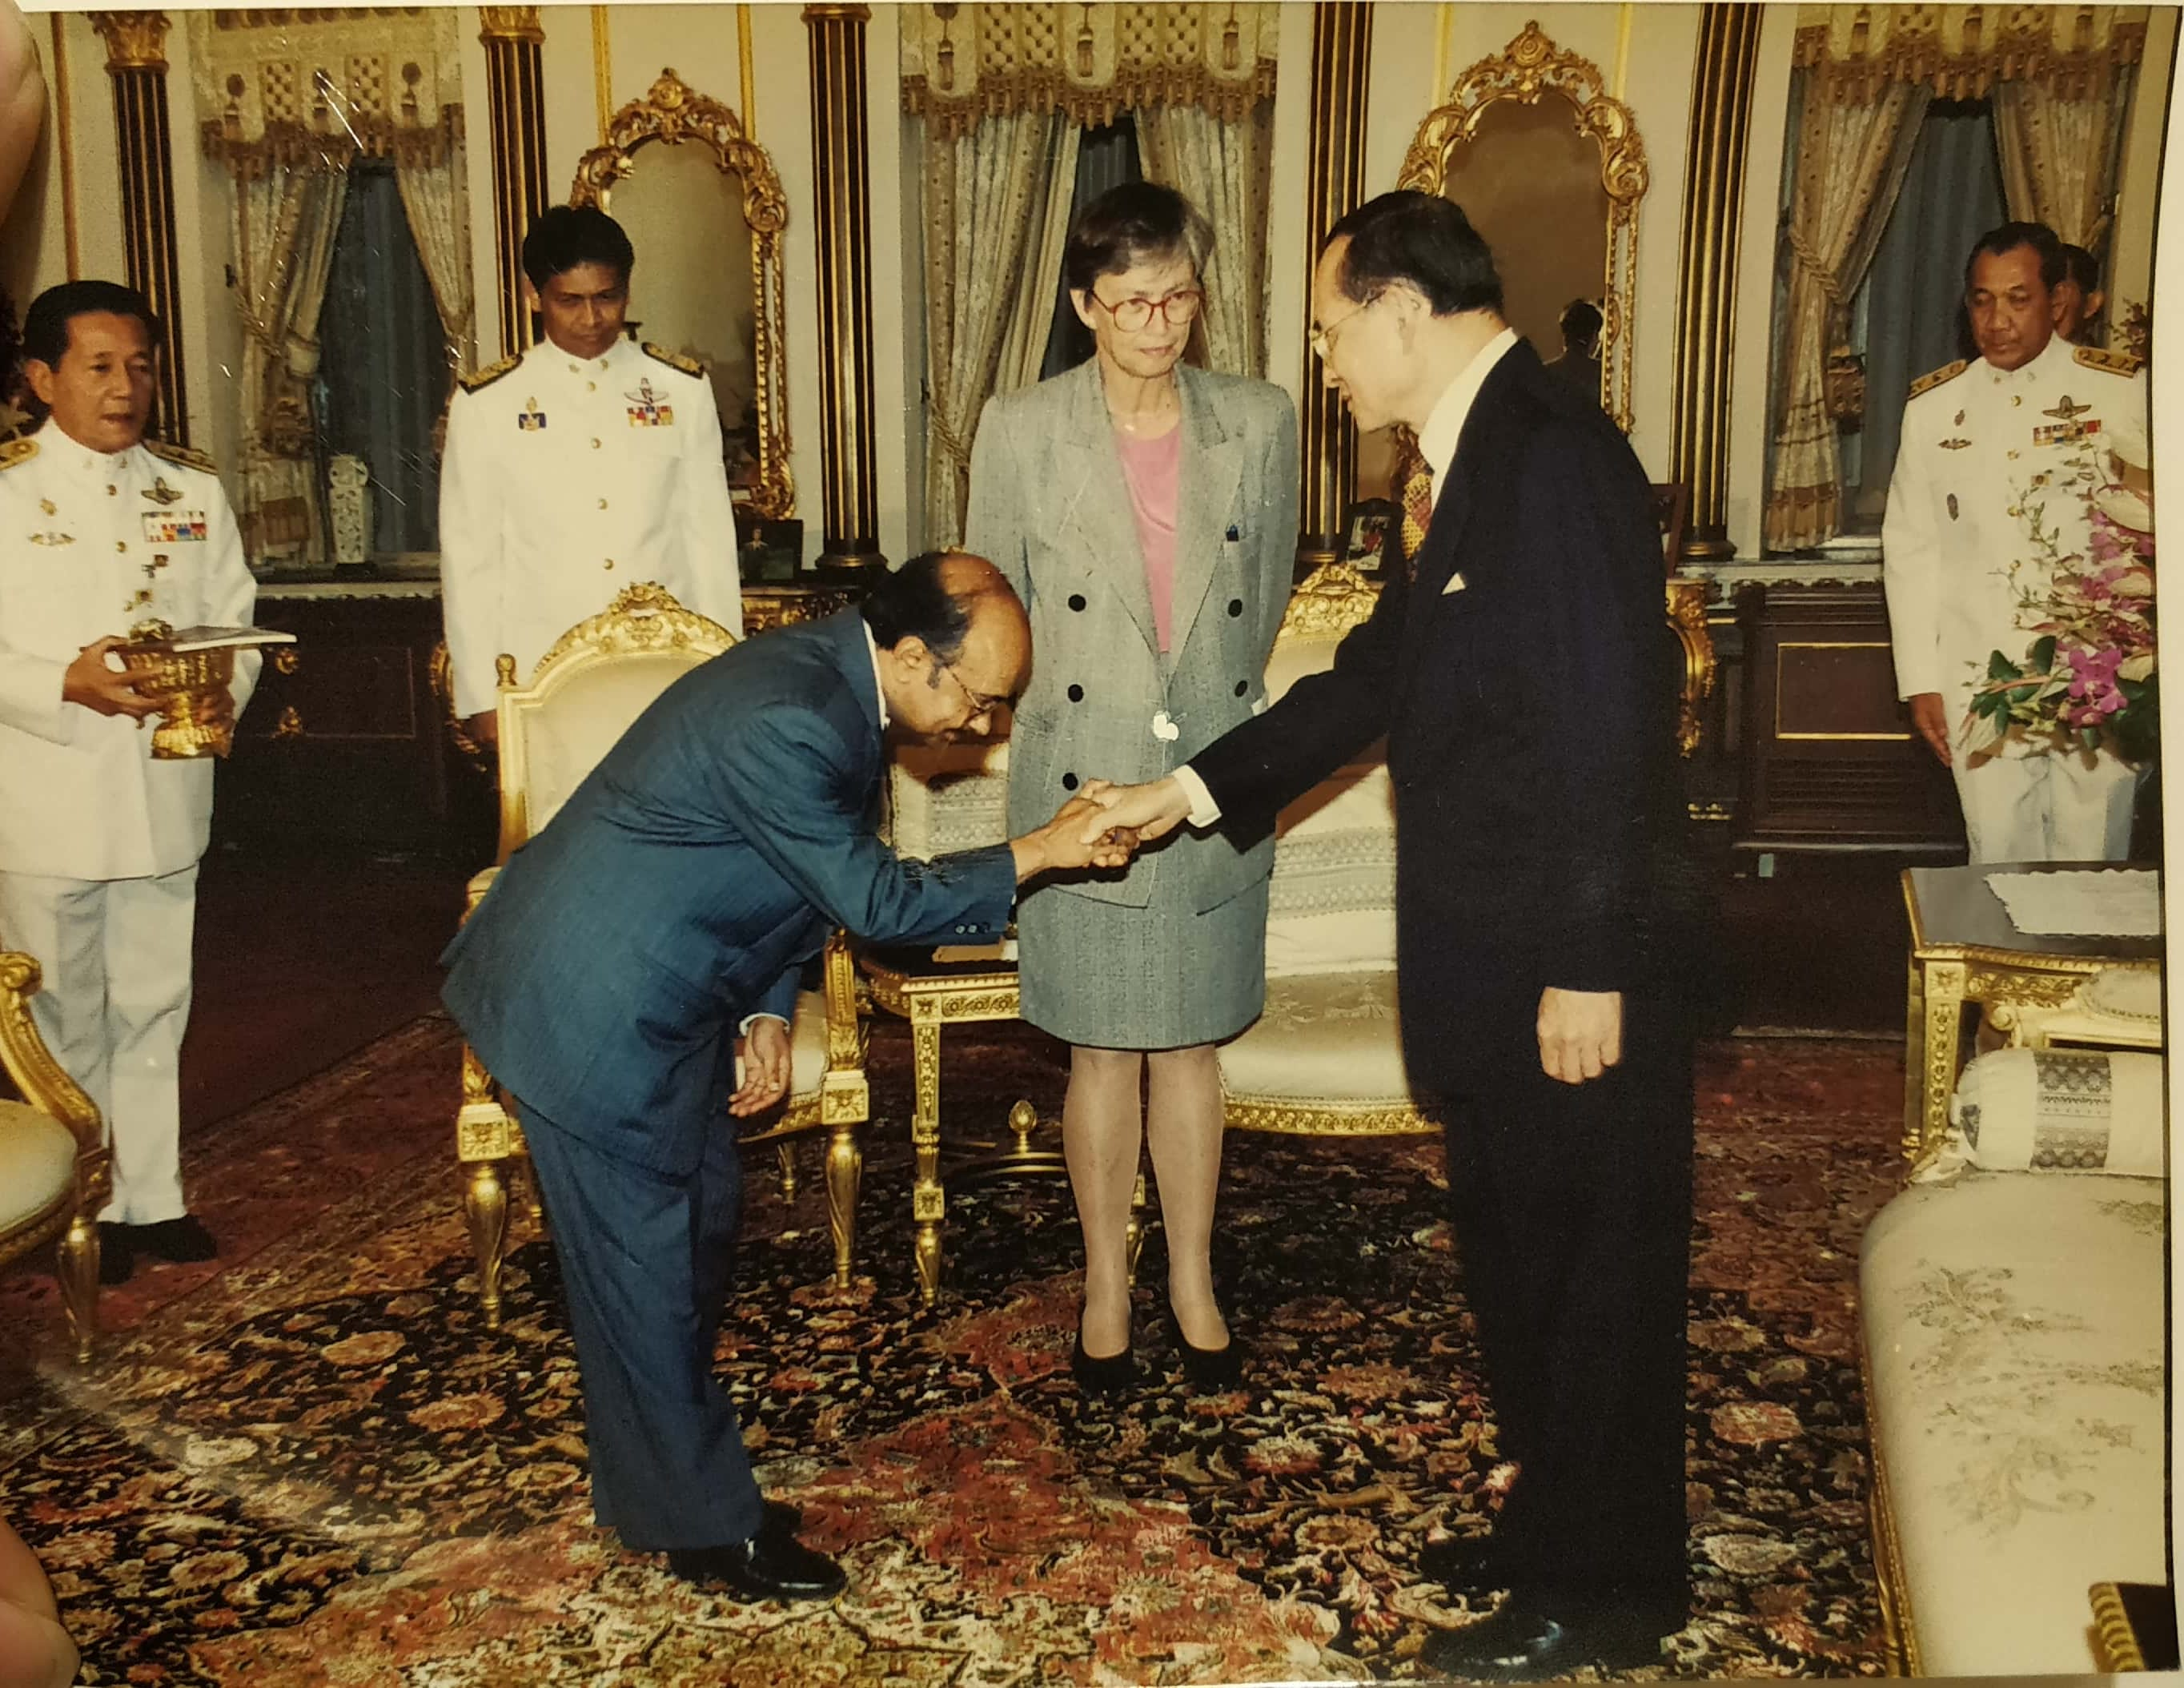 Late King's wishes for Thai children